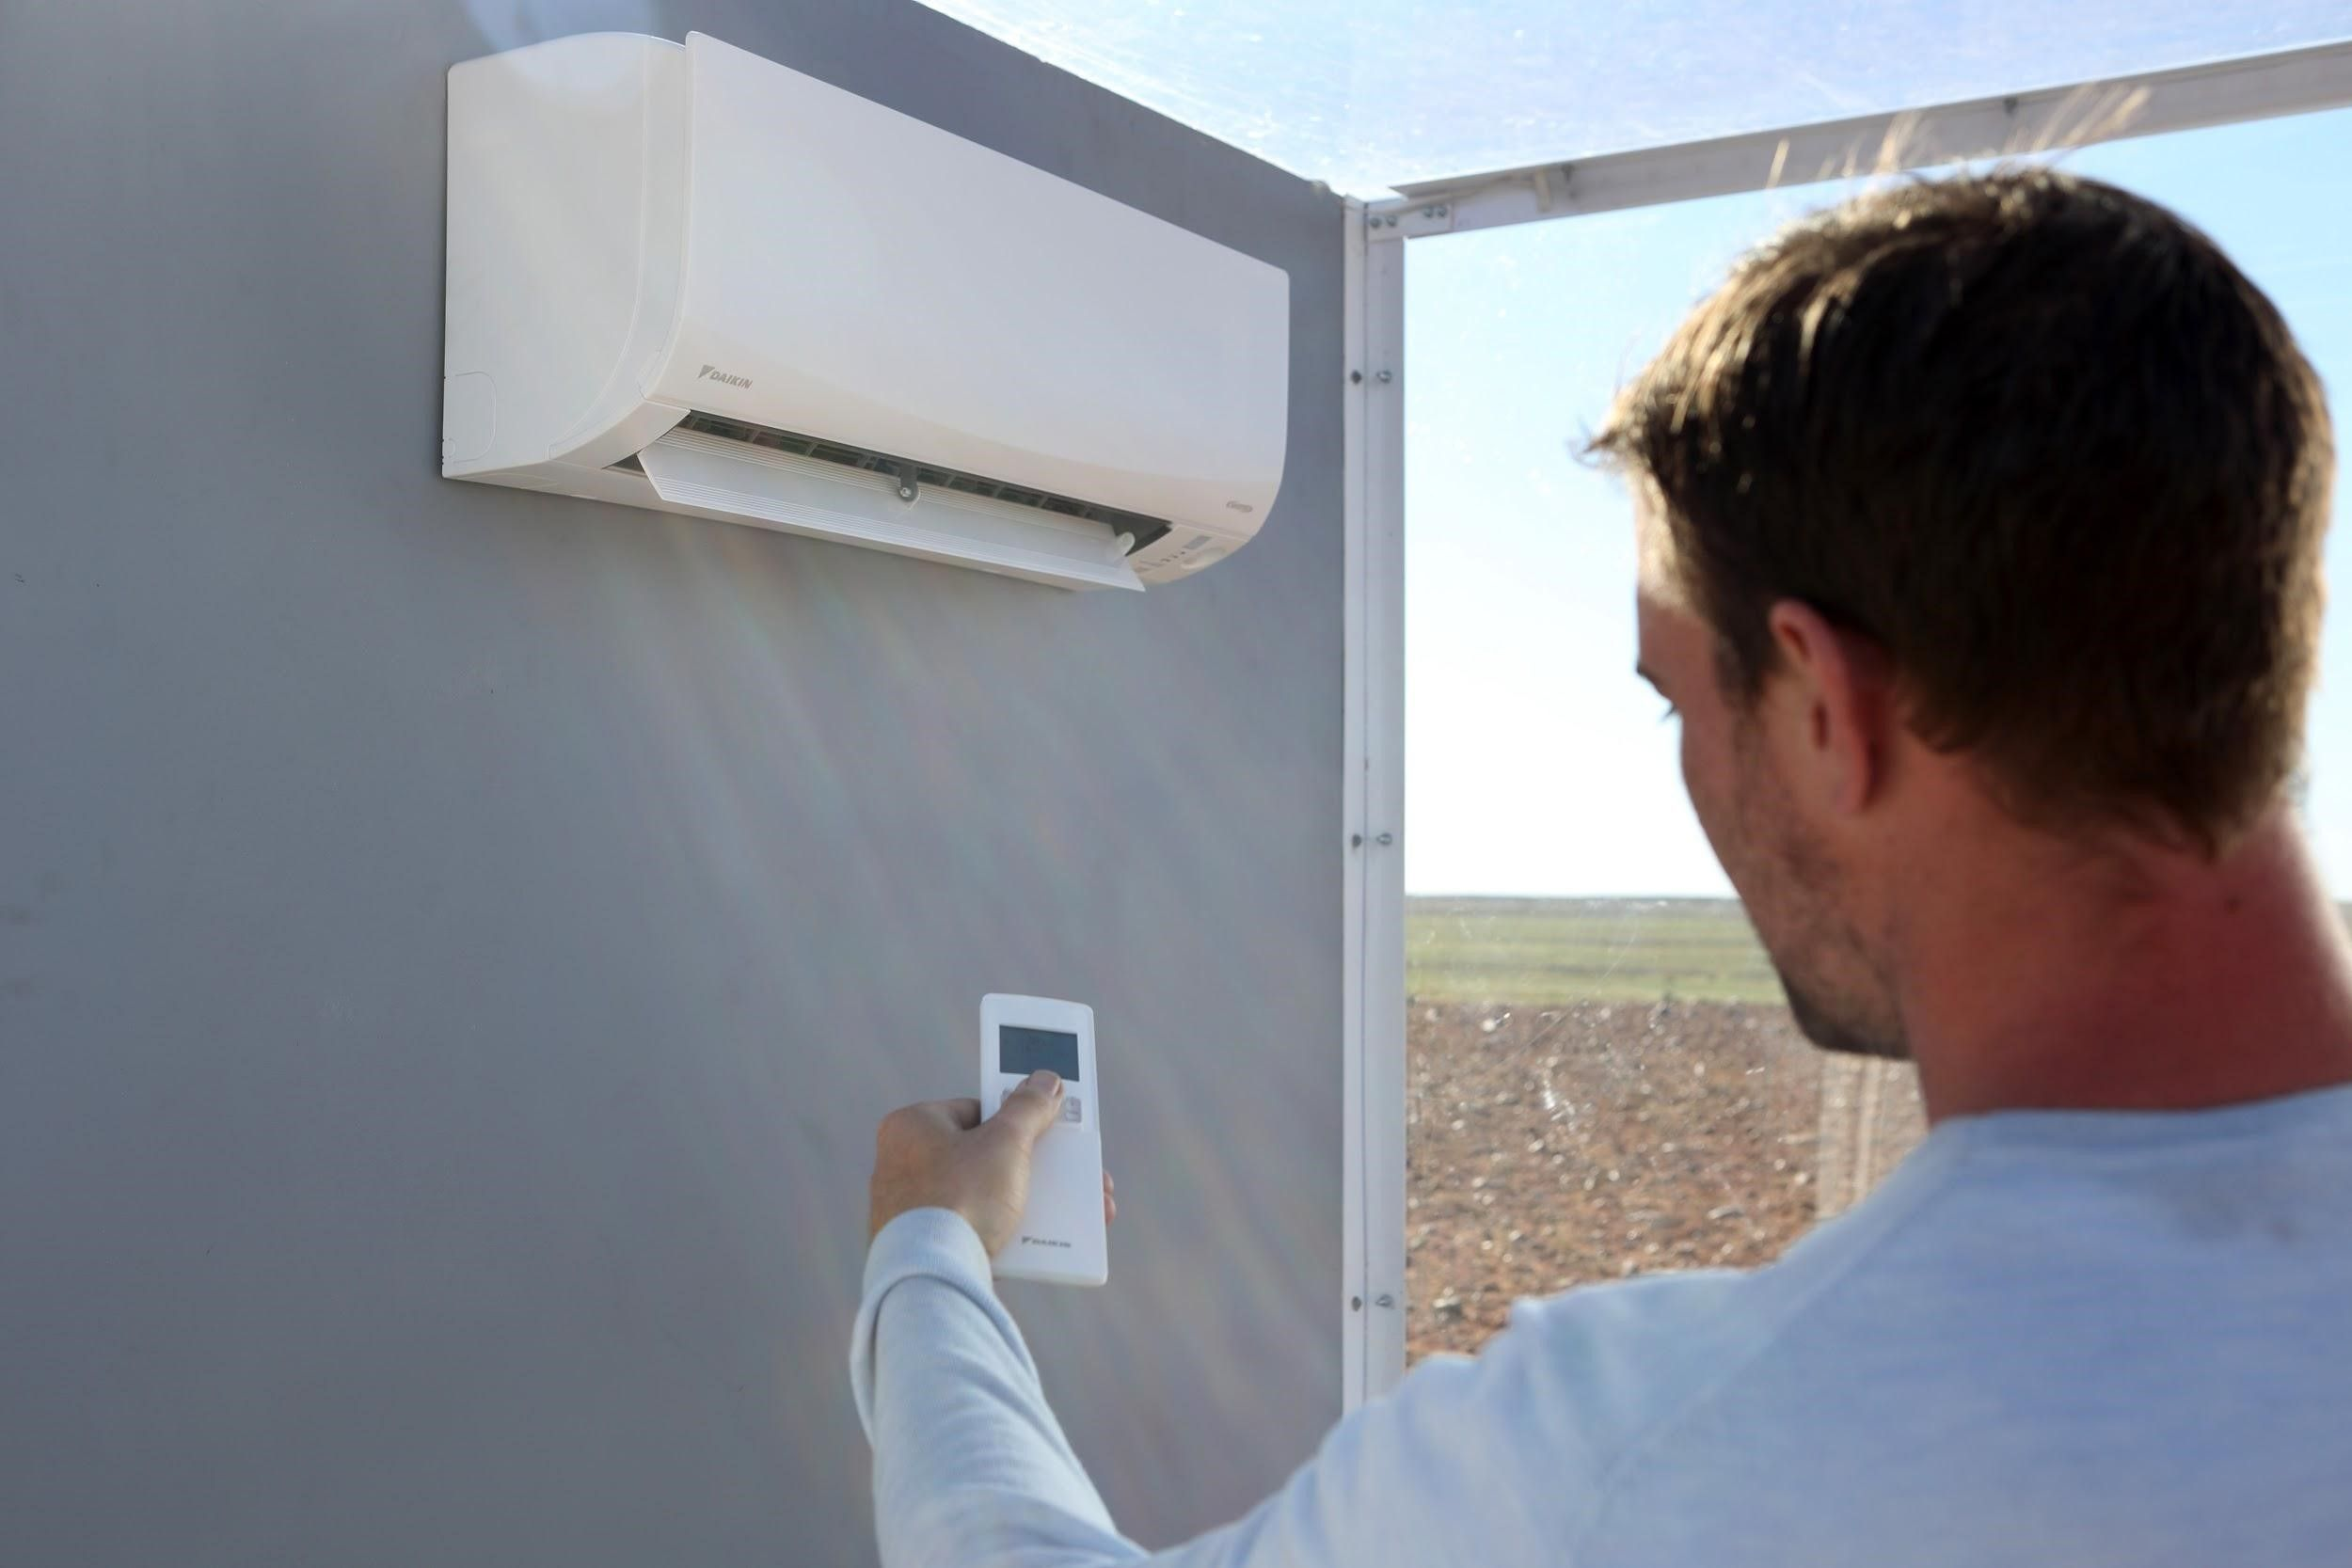 With Daikin's R32 refrigerant that efficiently conveys